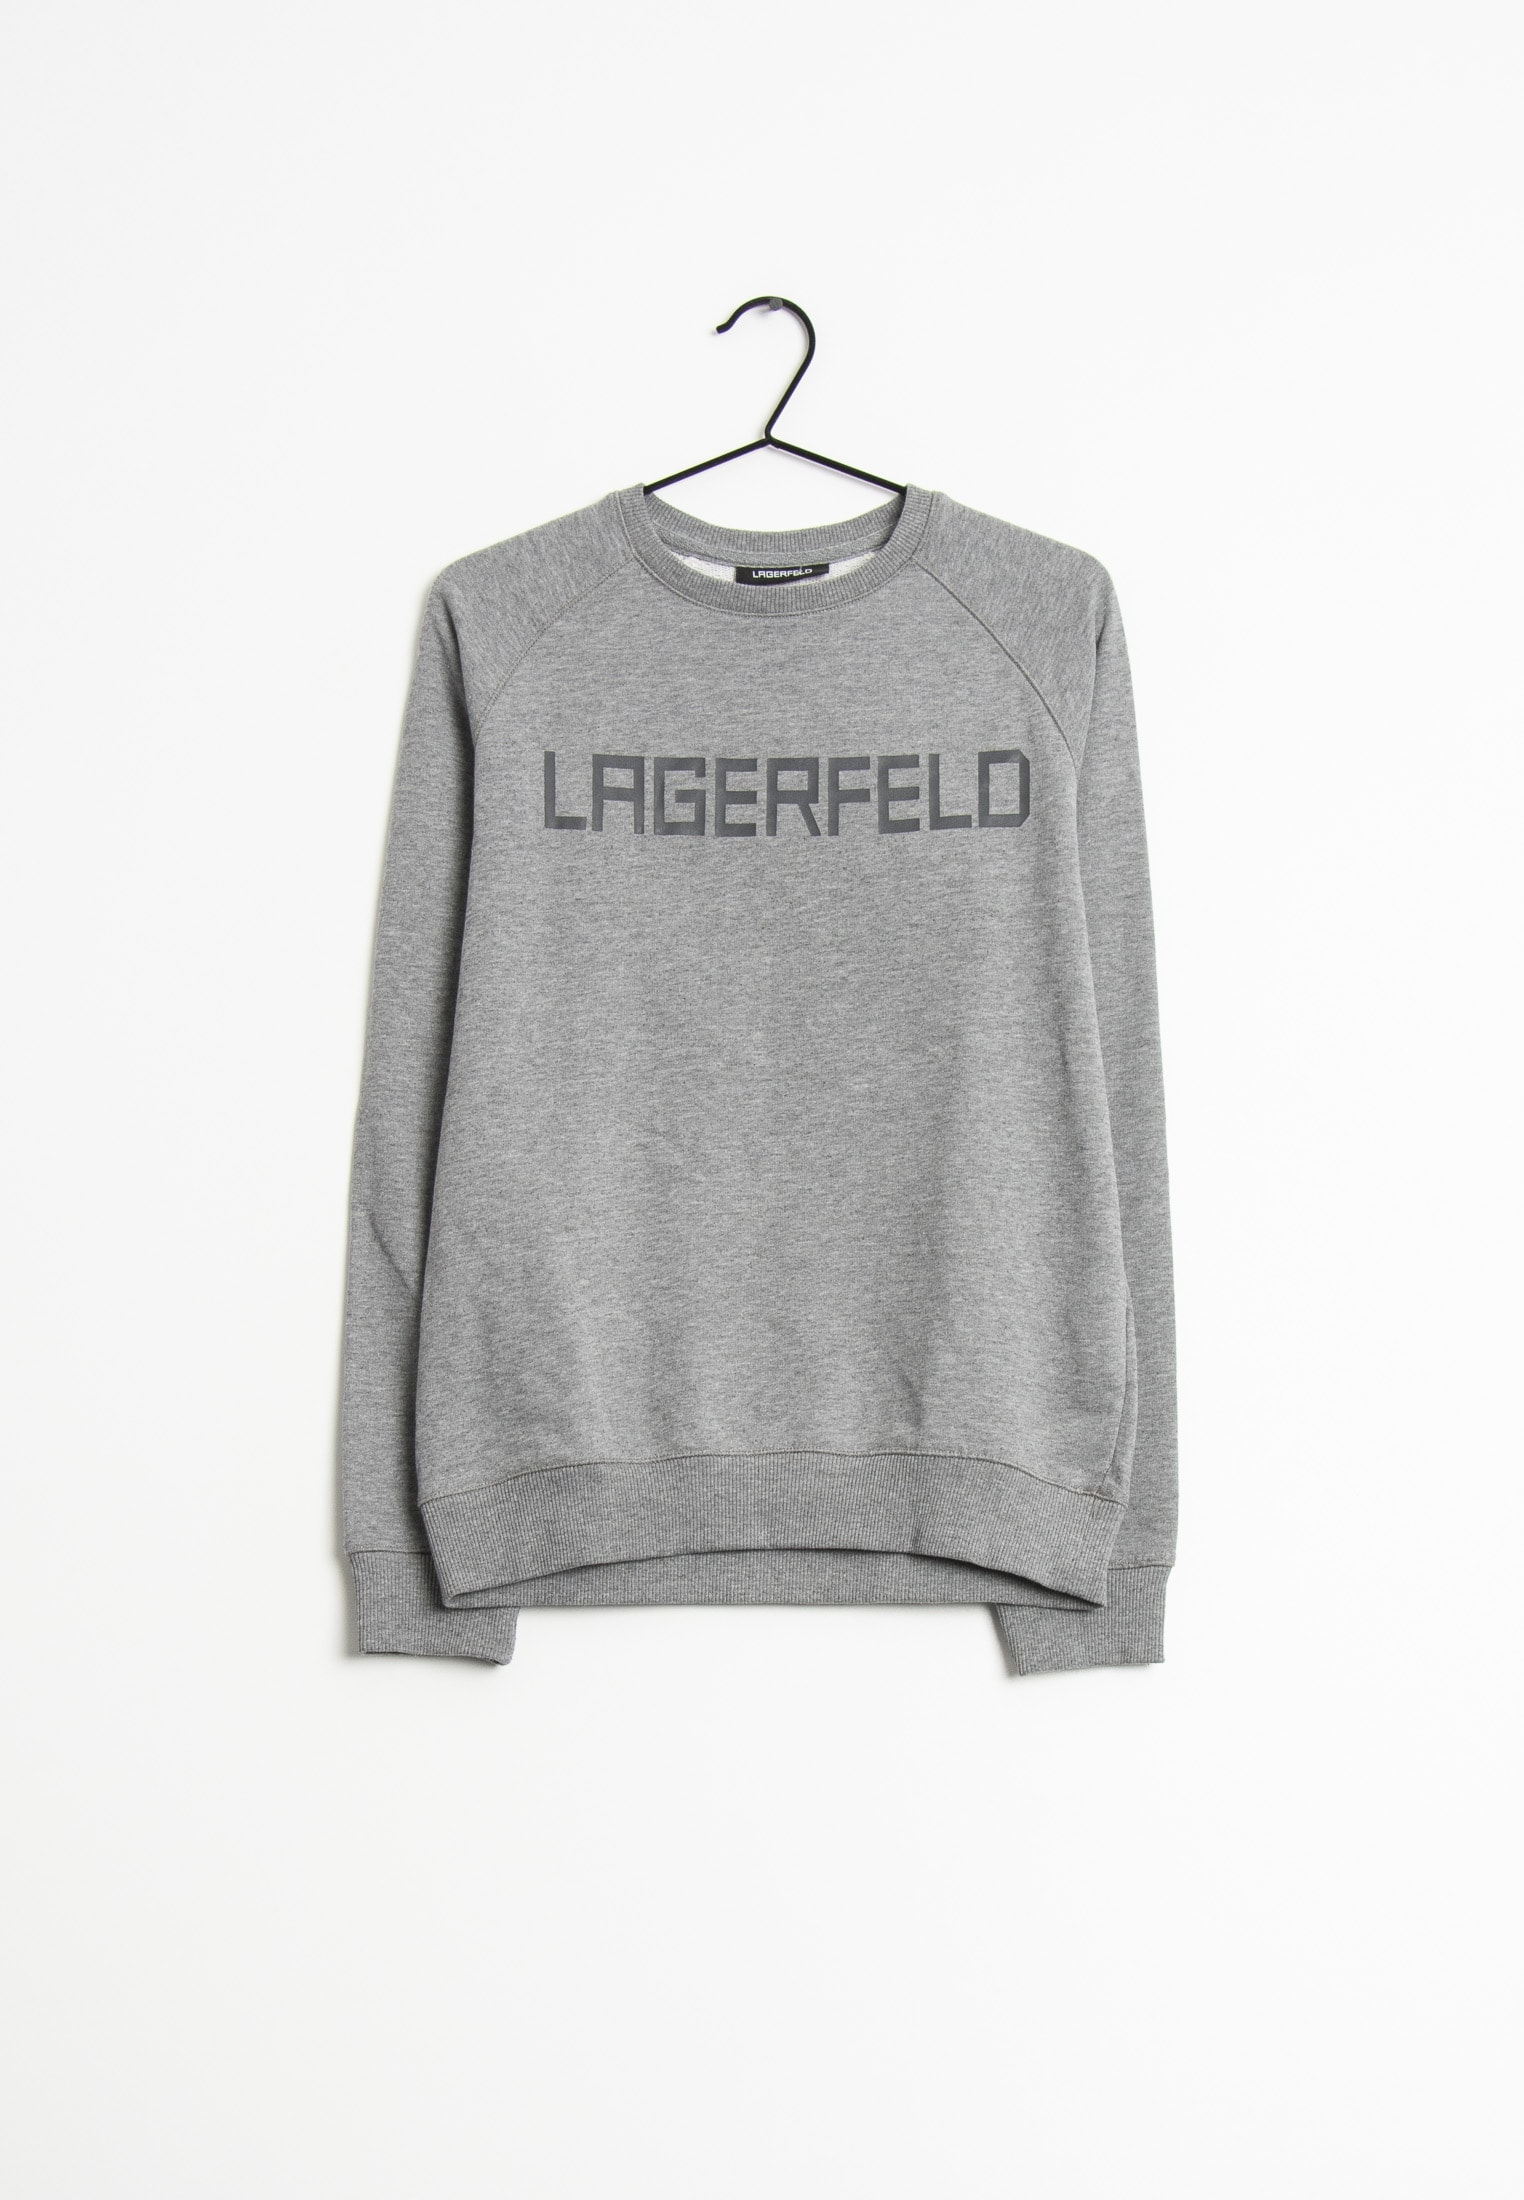 KARL LAGERFELD Sweat / Fleece Grau Gr.S